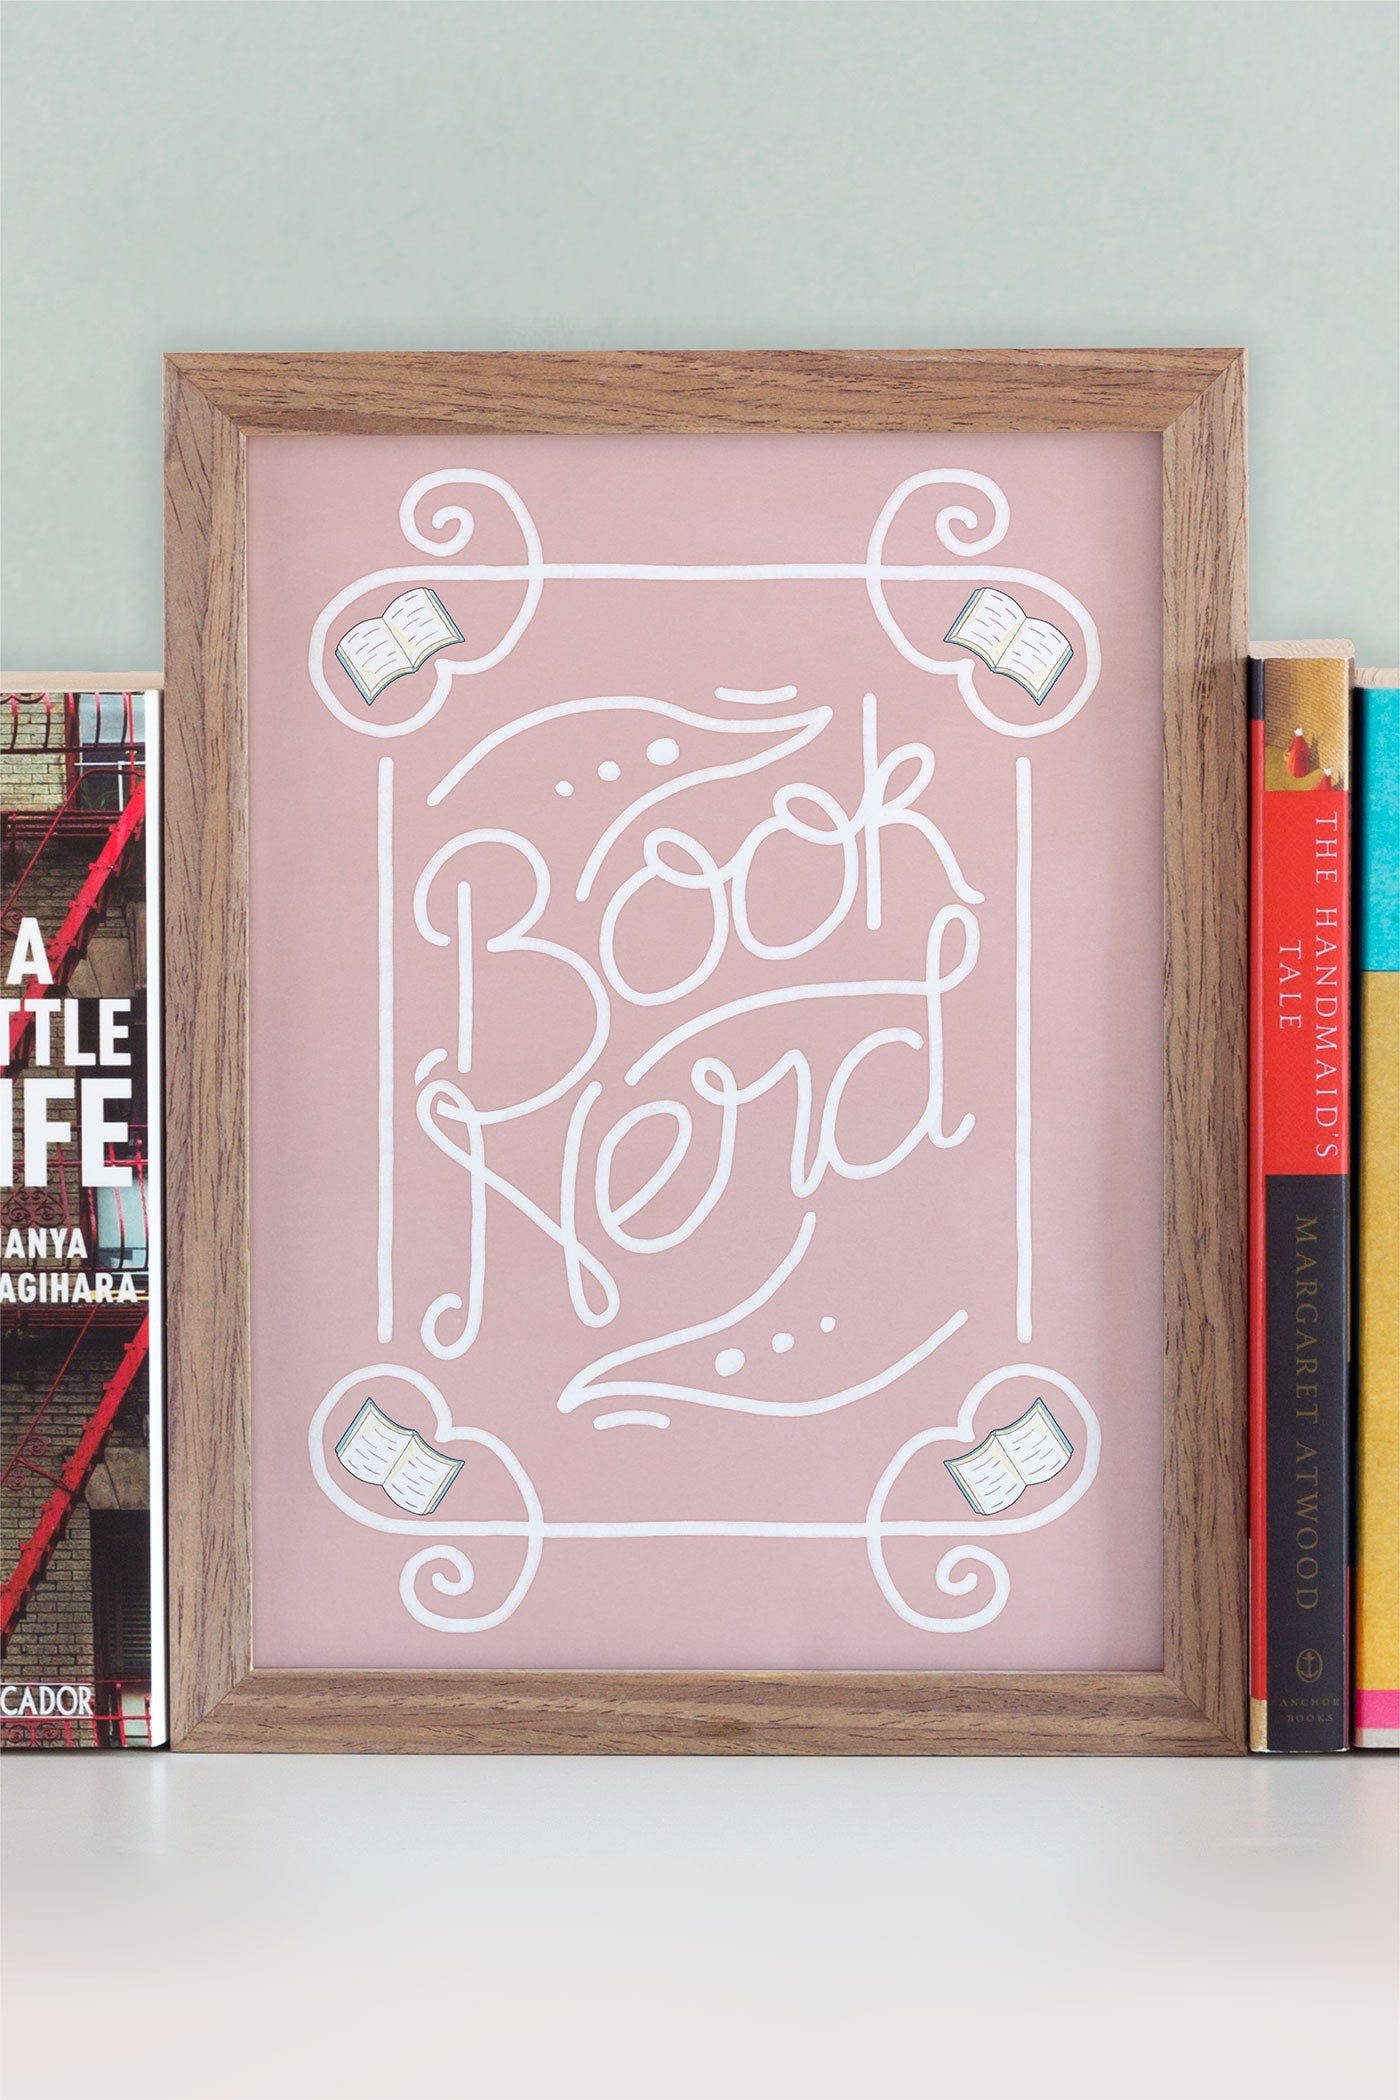 Book Nerd Illustrated Art Print - A Rose Cast